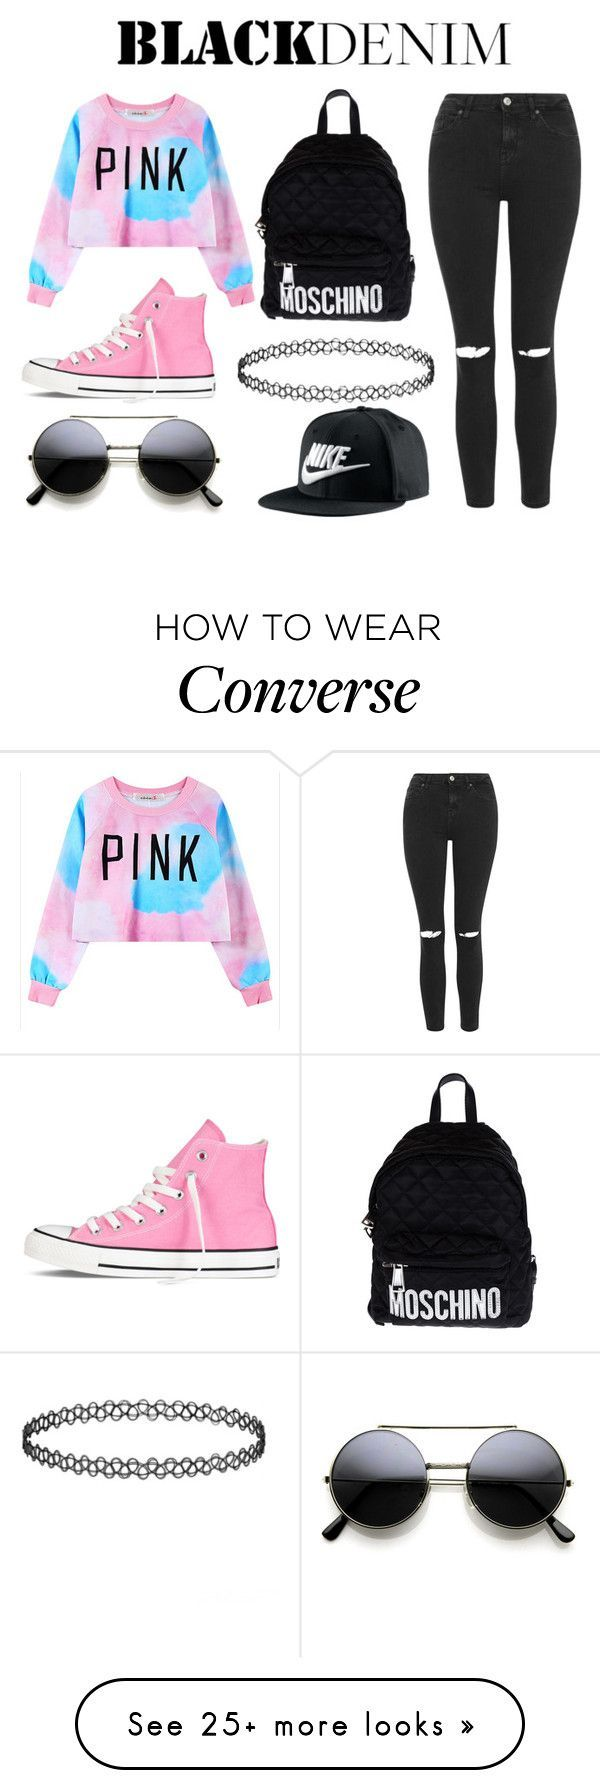 """black denim"" by pinksniper on Polyvore featuring Topshop, Chicnova Fashion, Converse, Moschino, NIKE, women's clothing, women's fashion, women, female and woman"